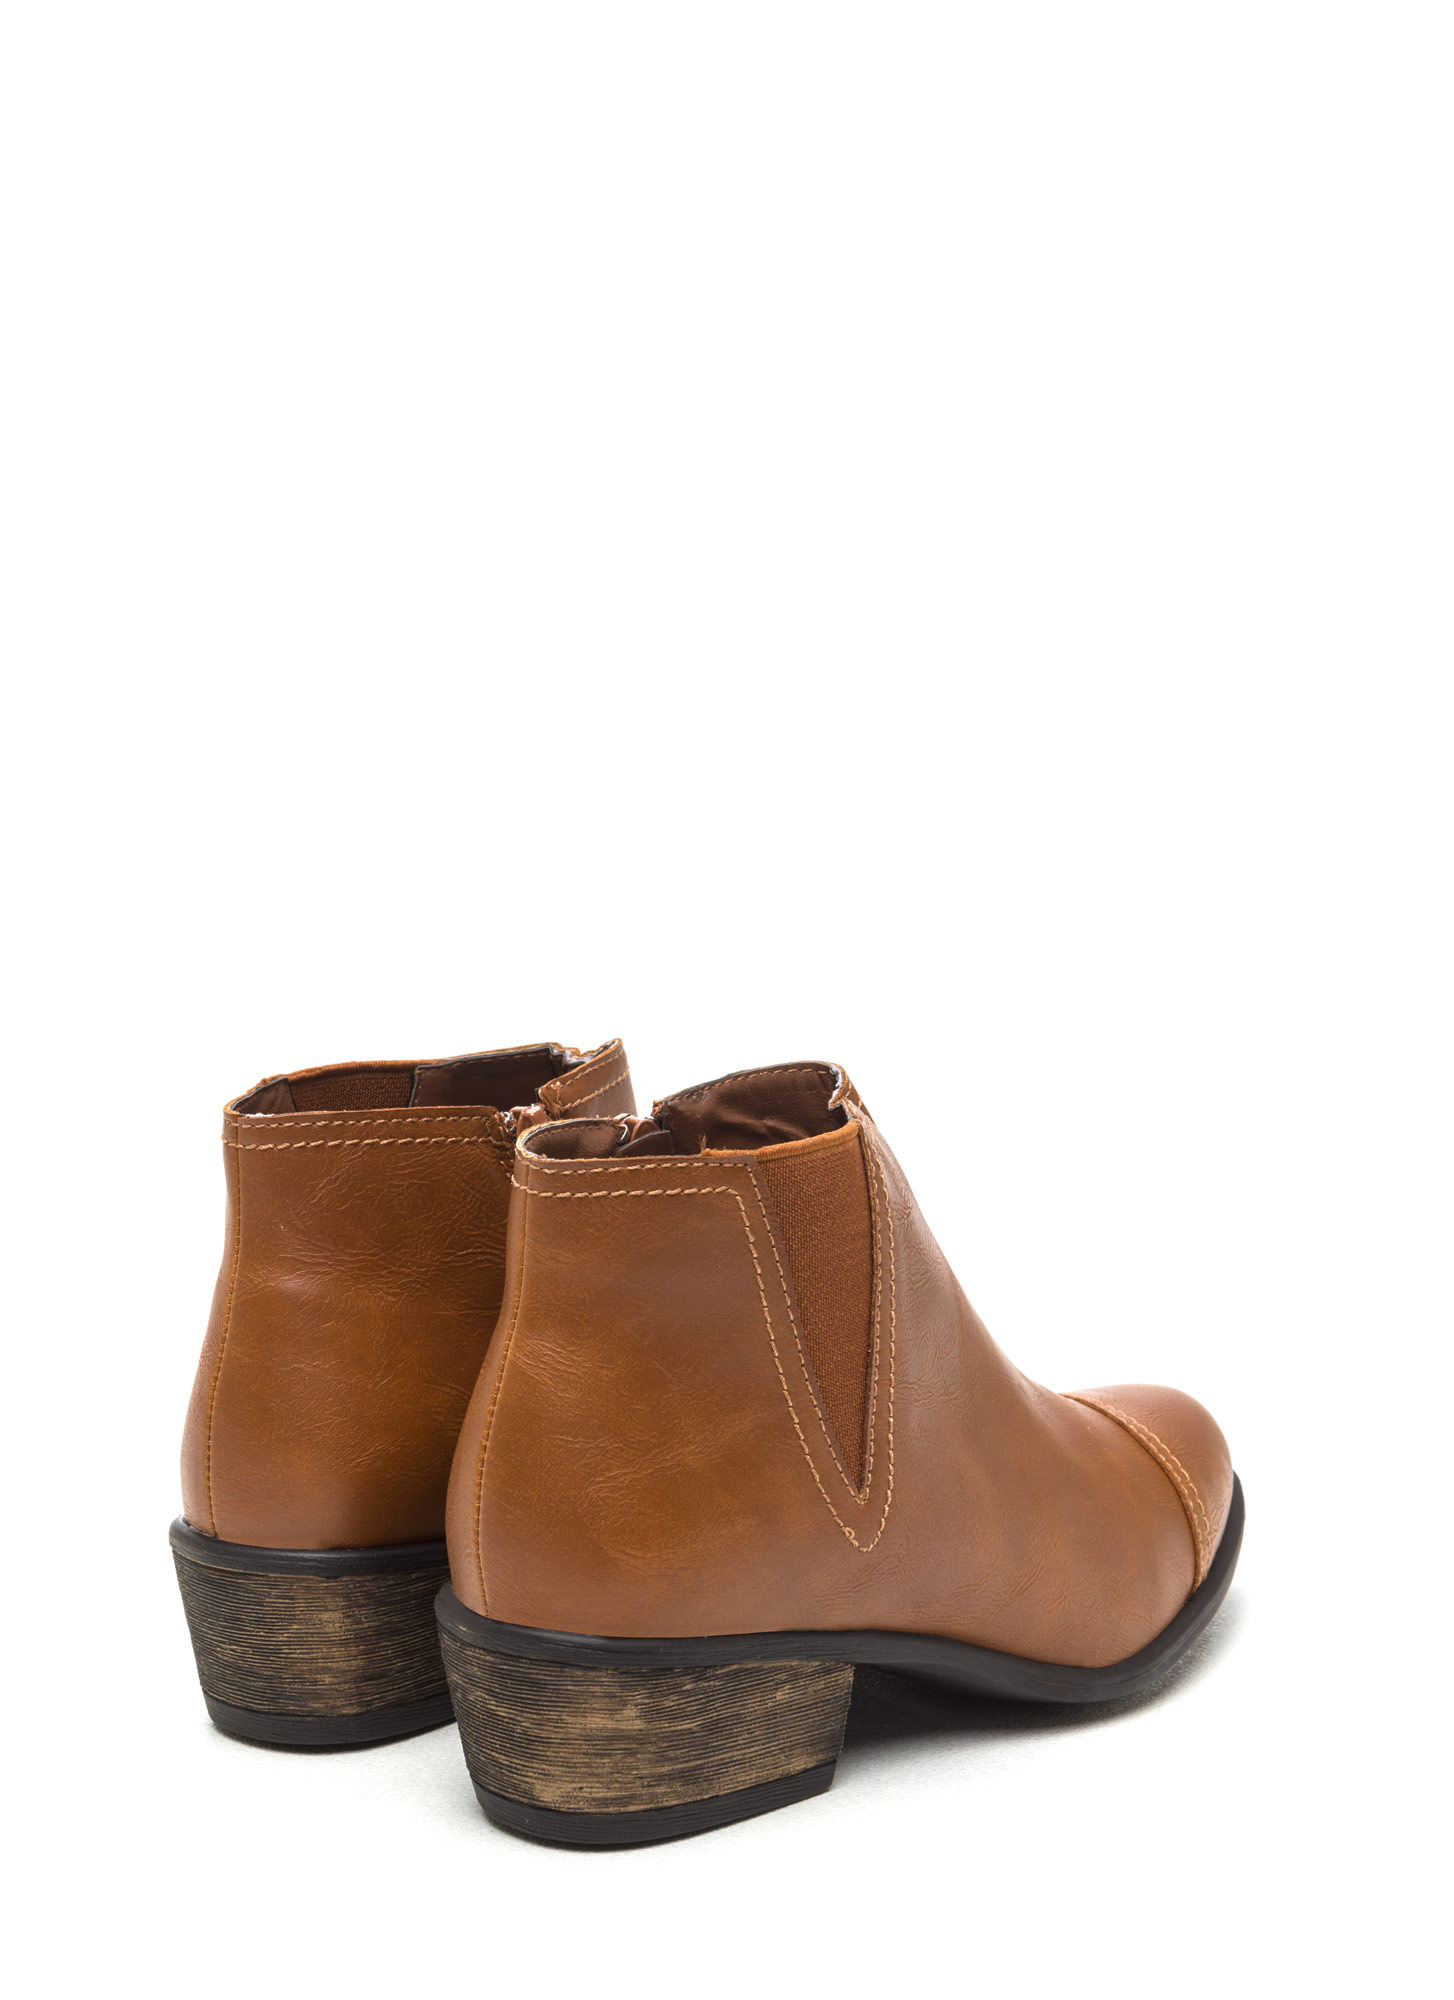 Fave It Faux Leather Booties CHESTNUT